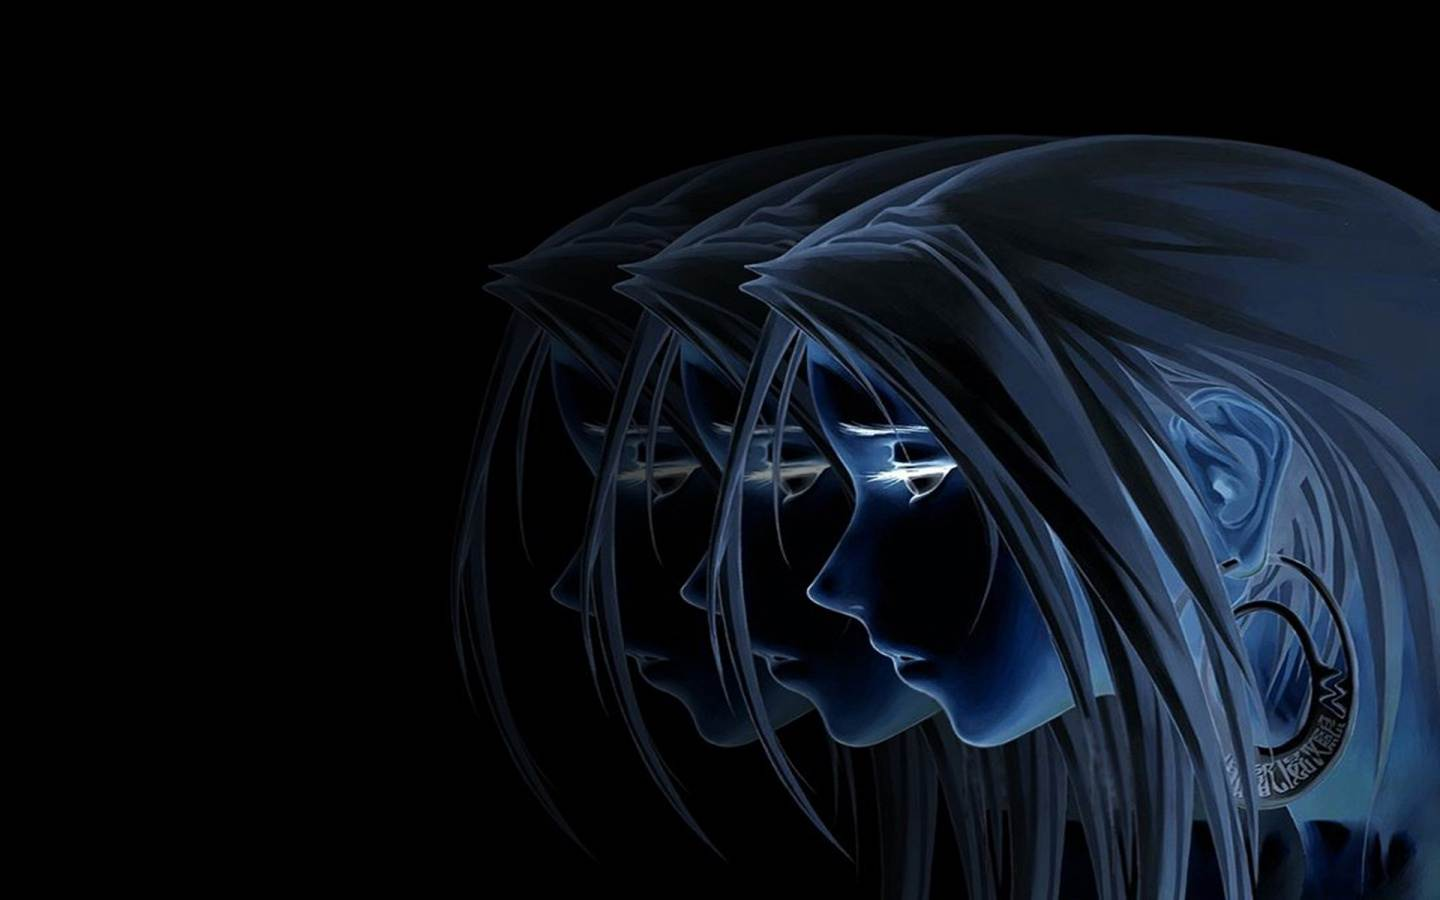 Sad Girl Wallpaper Wallpapers Desktop Backgrounds HD Wallpapers 1440x900